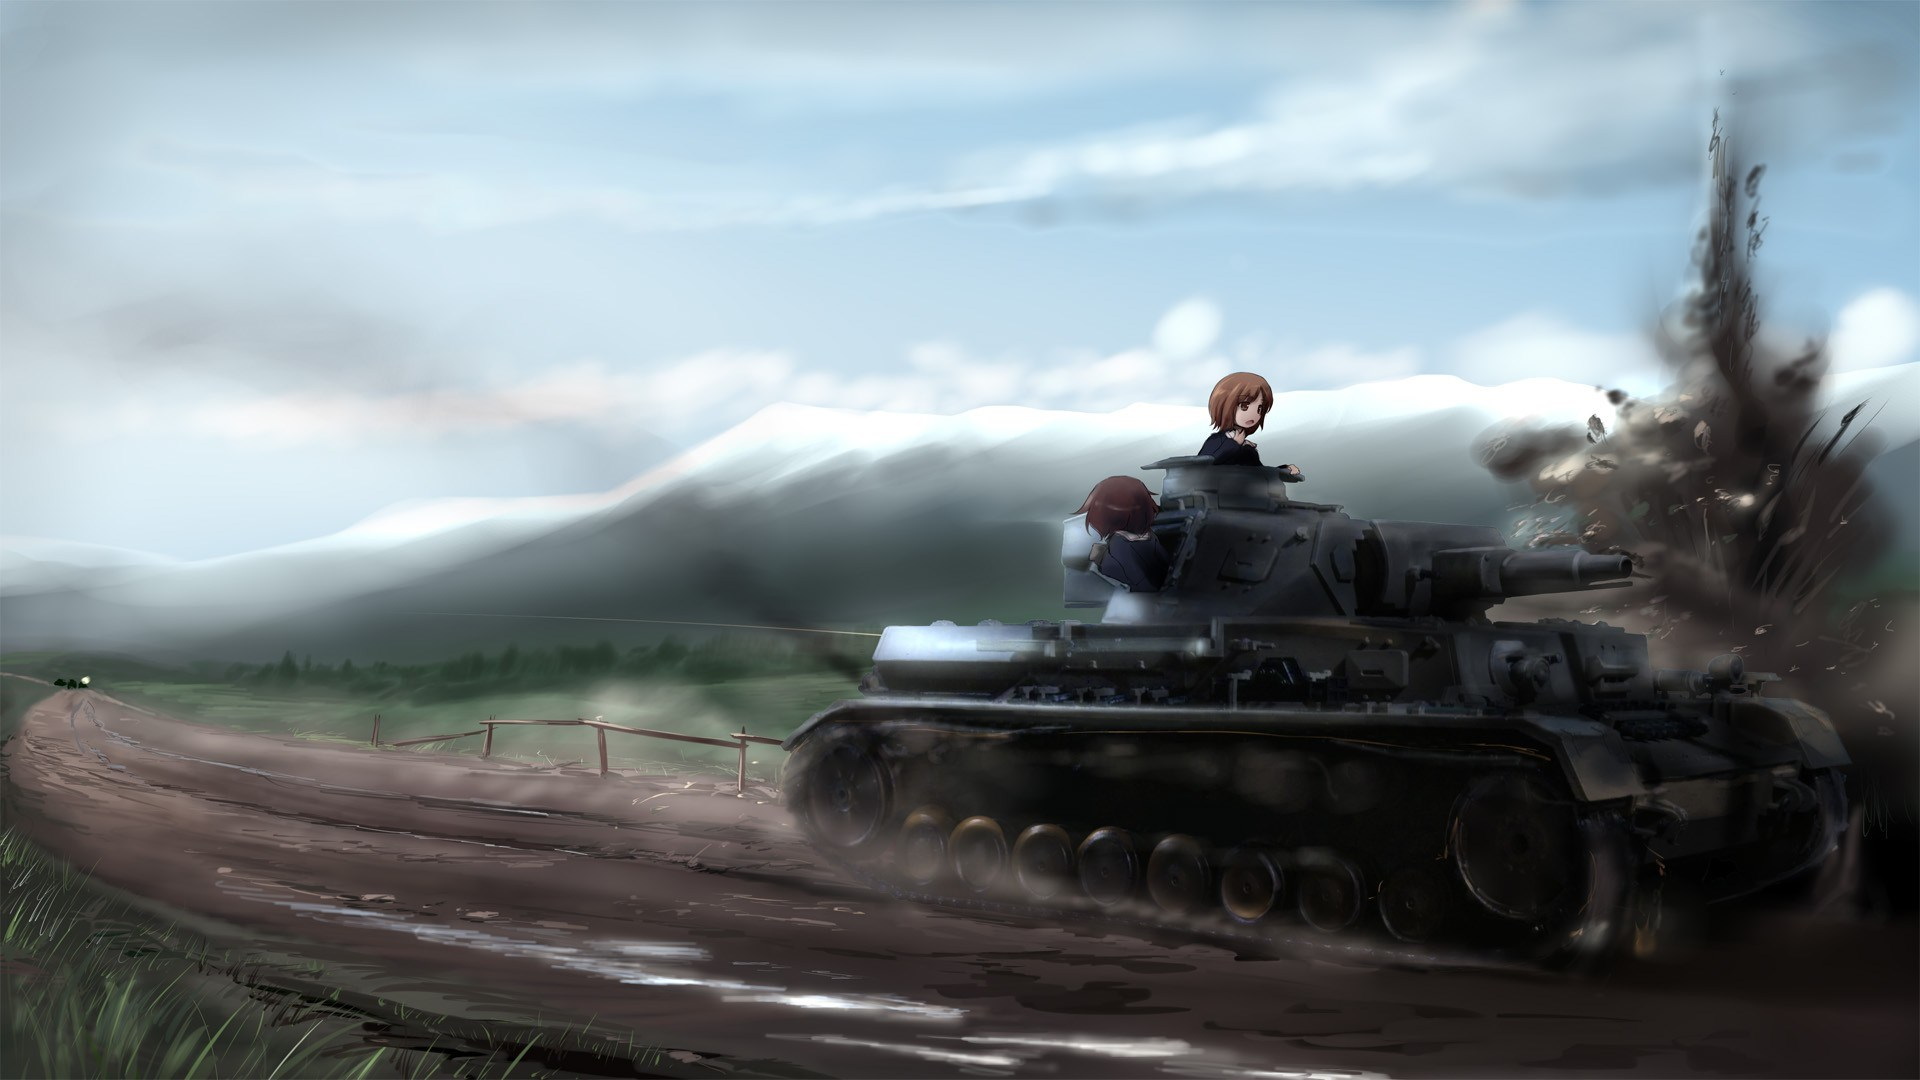 1920x1080-free-and-screensavers-for-girls-und-panzer-wallpaper-wpc580787